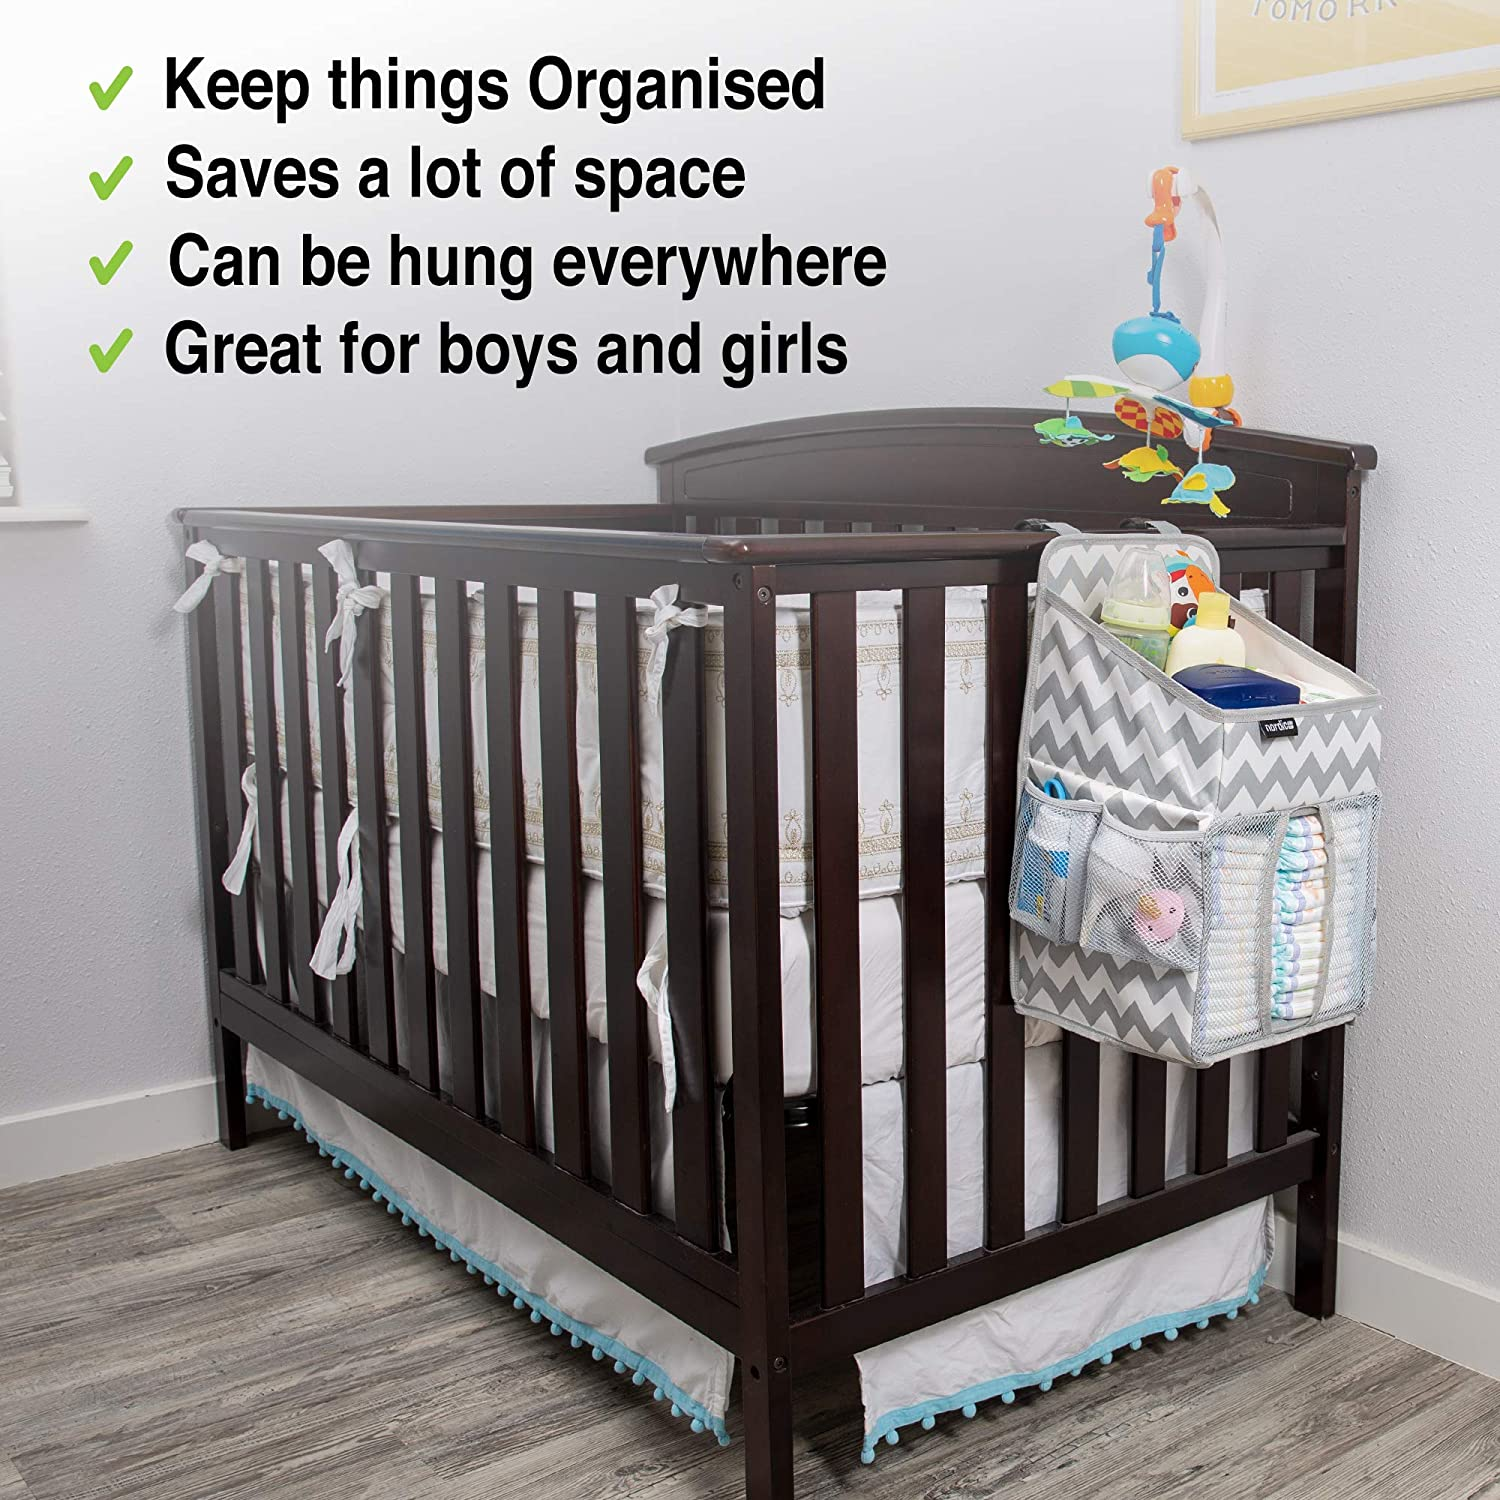 20x9x9 Resistant Easy-to-Hang Changing Table Organizer Diaper Stacker for Newborn Baby Diapers Crib Hanging Storage with 3 Side Pockets Daily Nordic Diaper Caddy Nursery Organizer Wet Wipes Toys